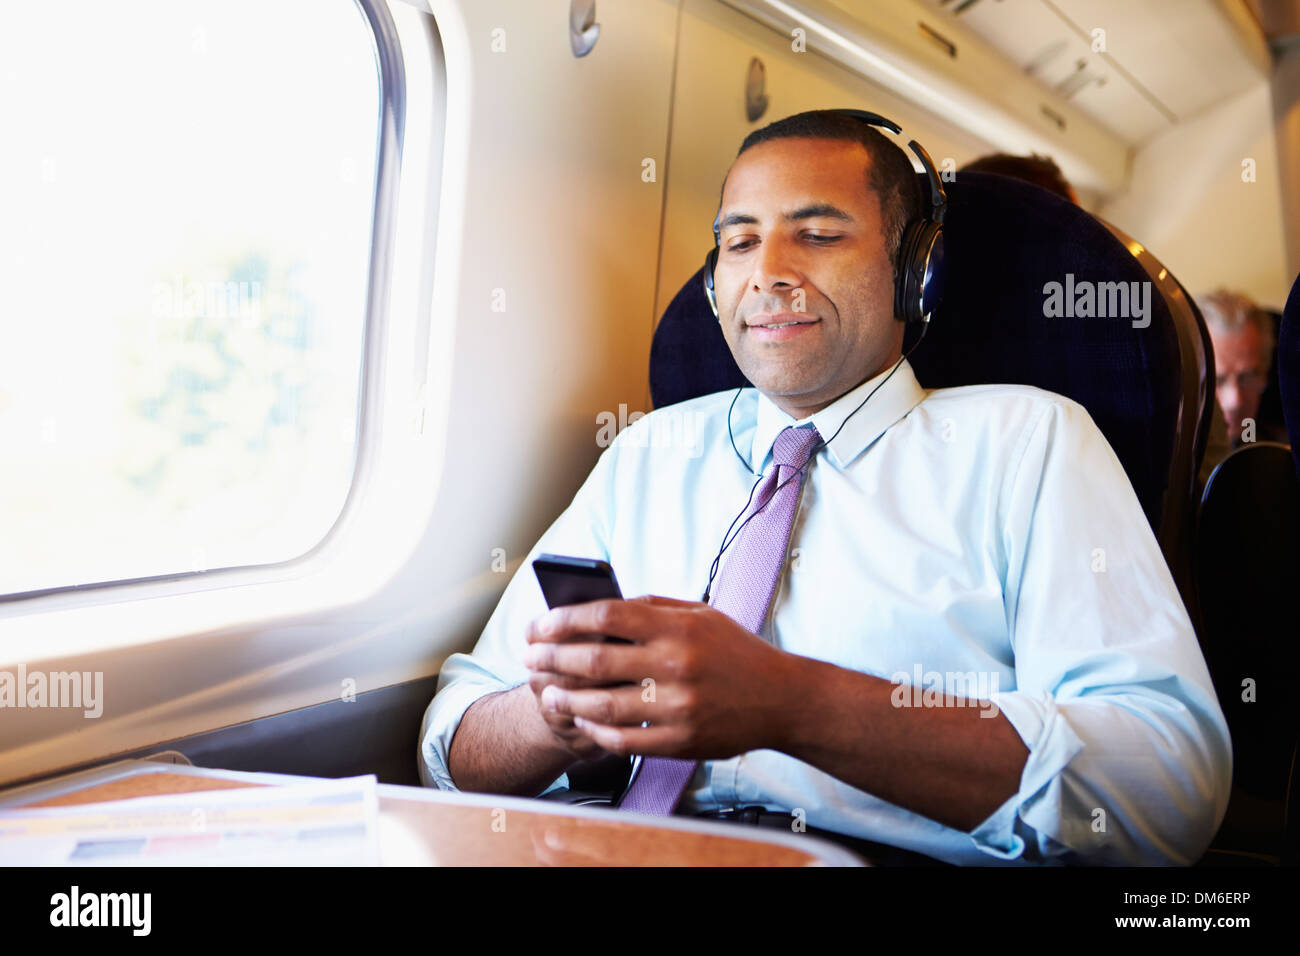 Businessman Relaxing On Train Listening To Music - Stock Image